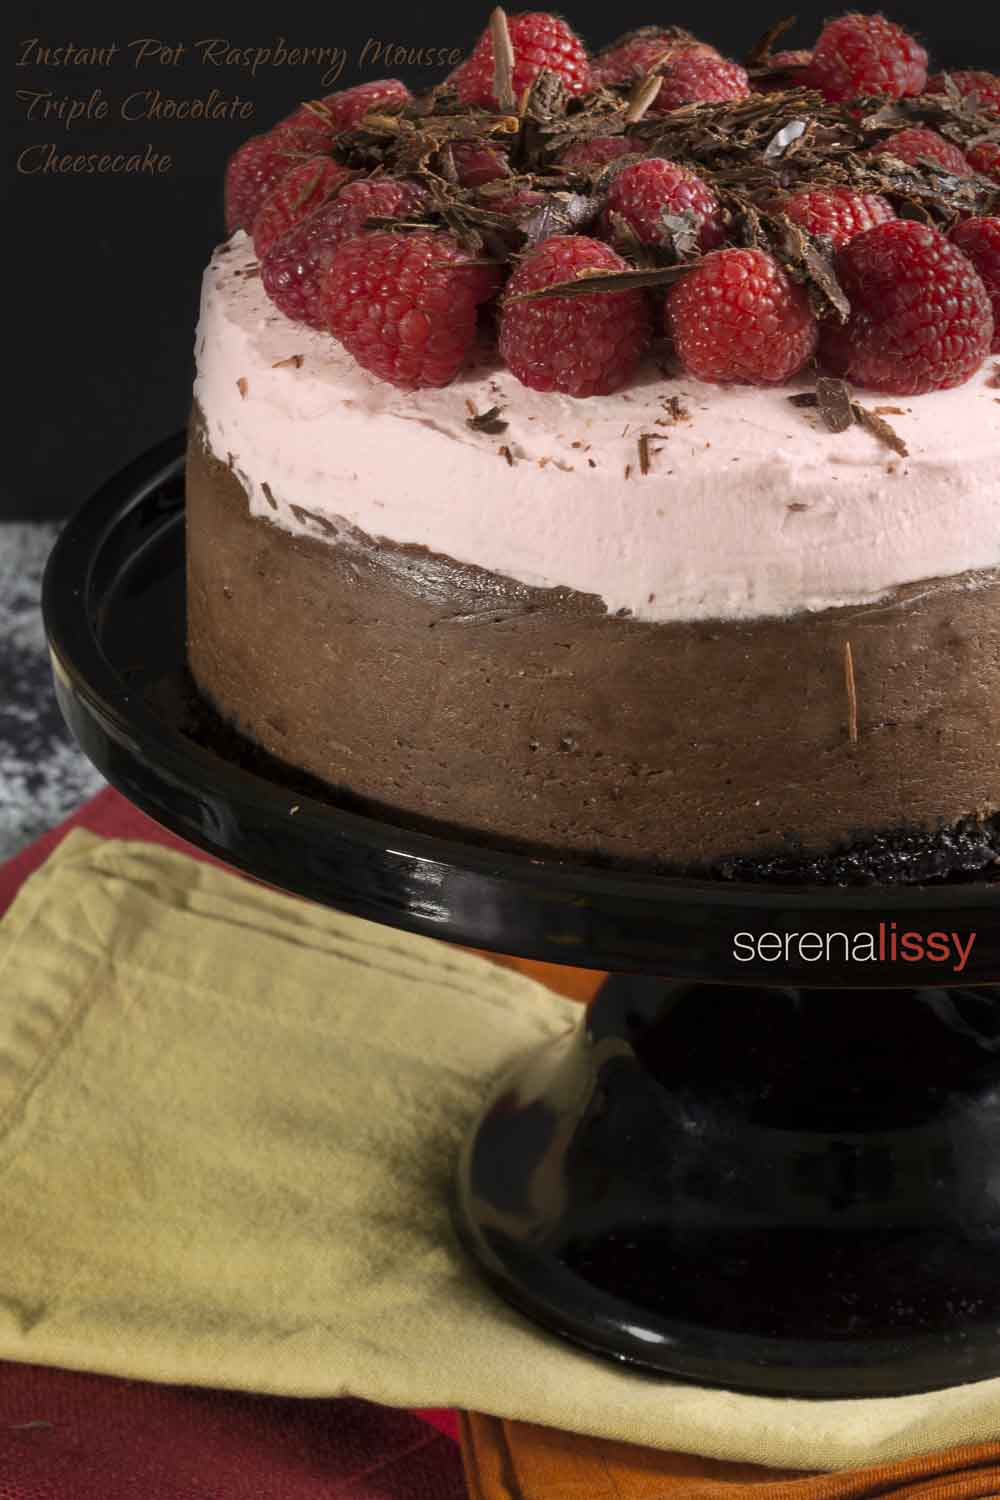 Instant Pot Raspberry Mousse Chocolate Cheesecake